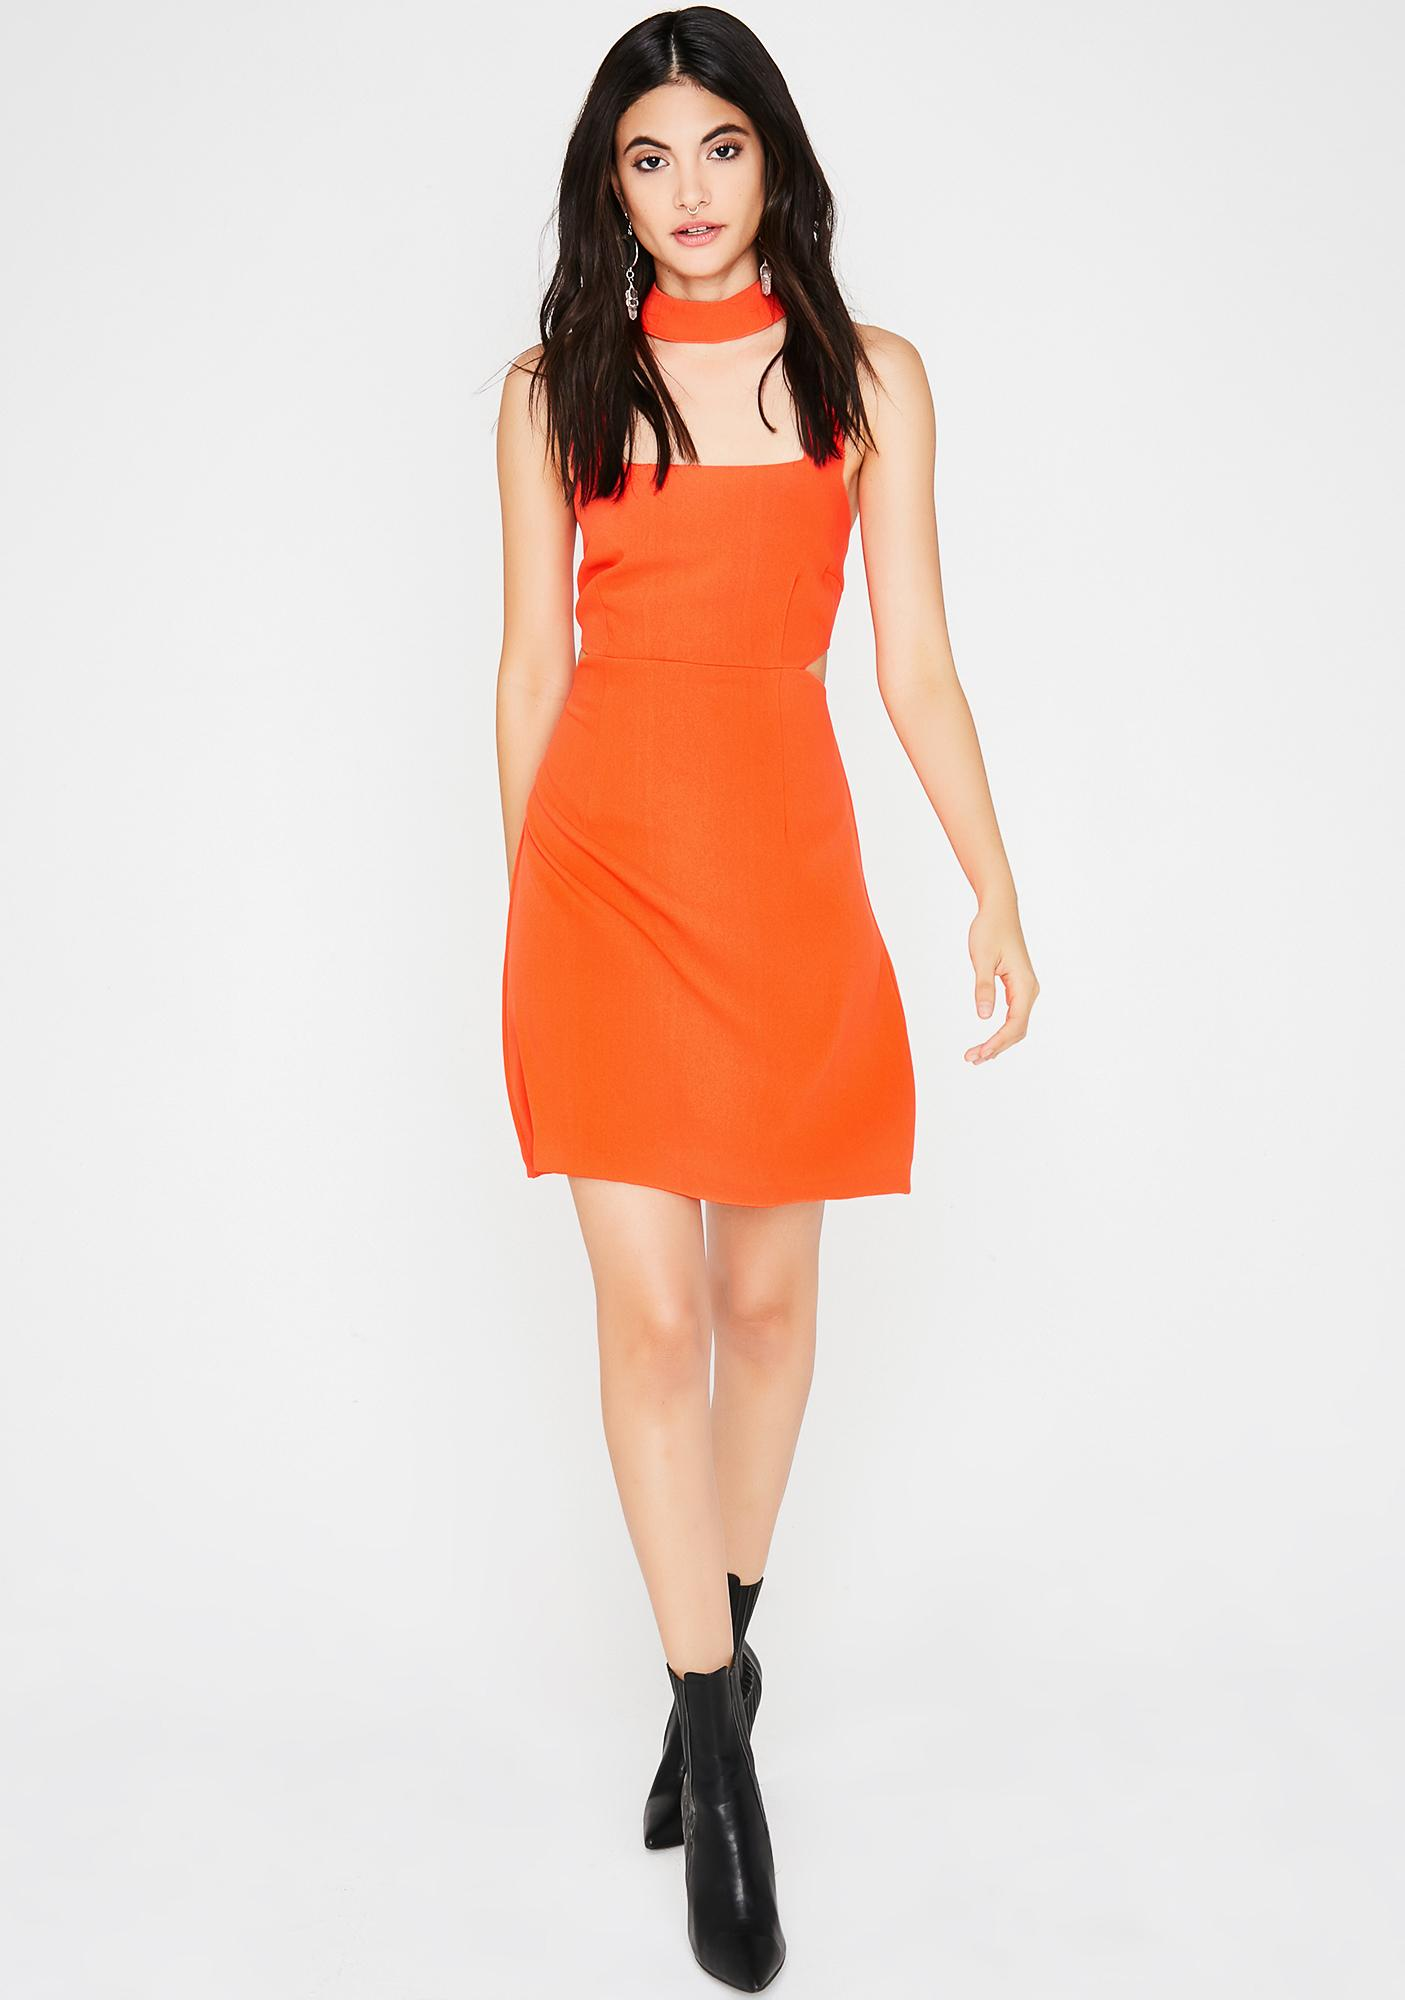 Cali Poppy Mini Dress